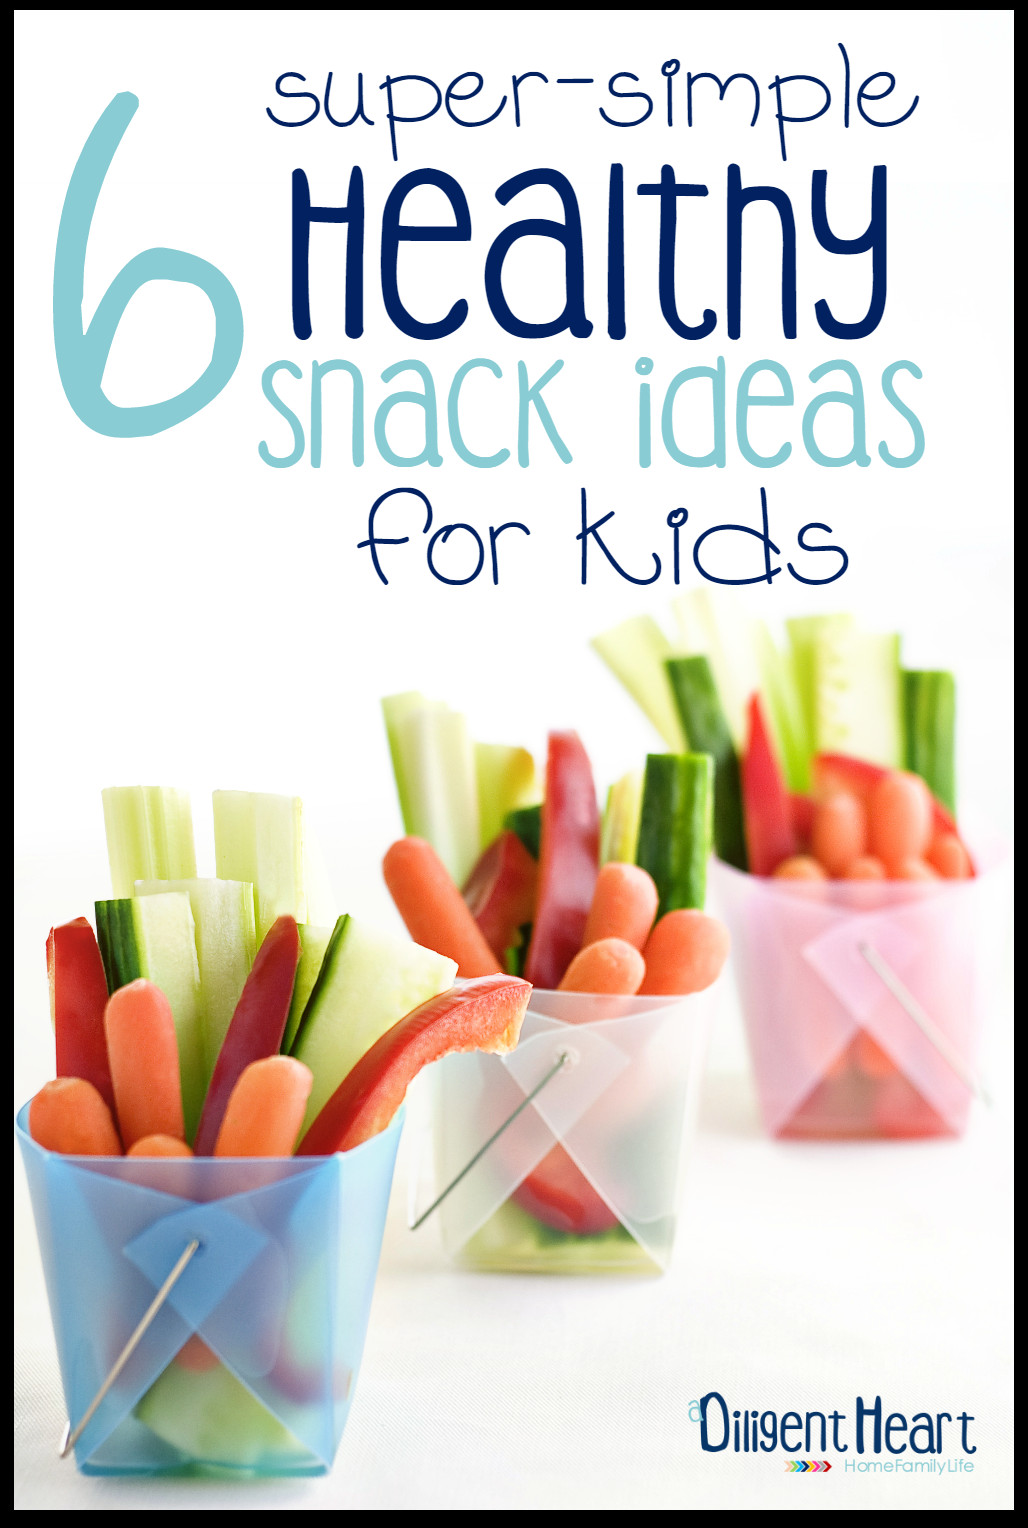 Heart Healthy Snacks  6 Super Simple Healthy Snack Ideas For Kids